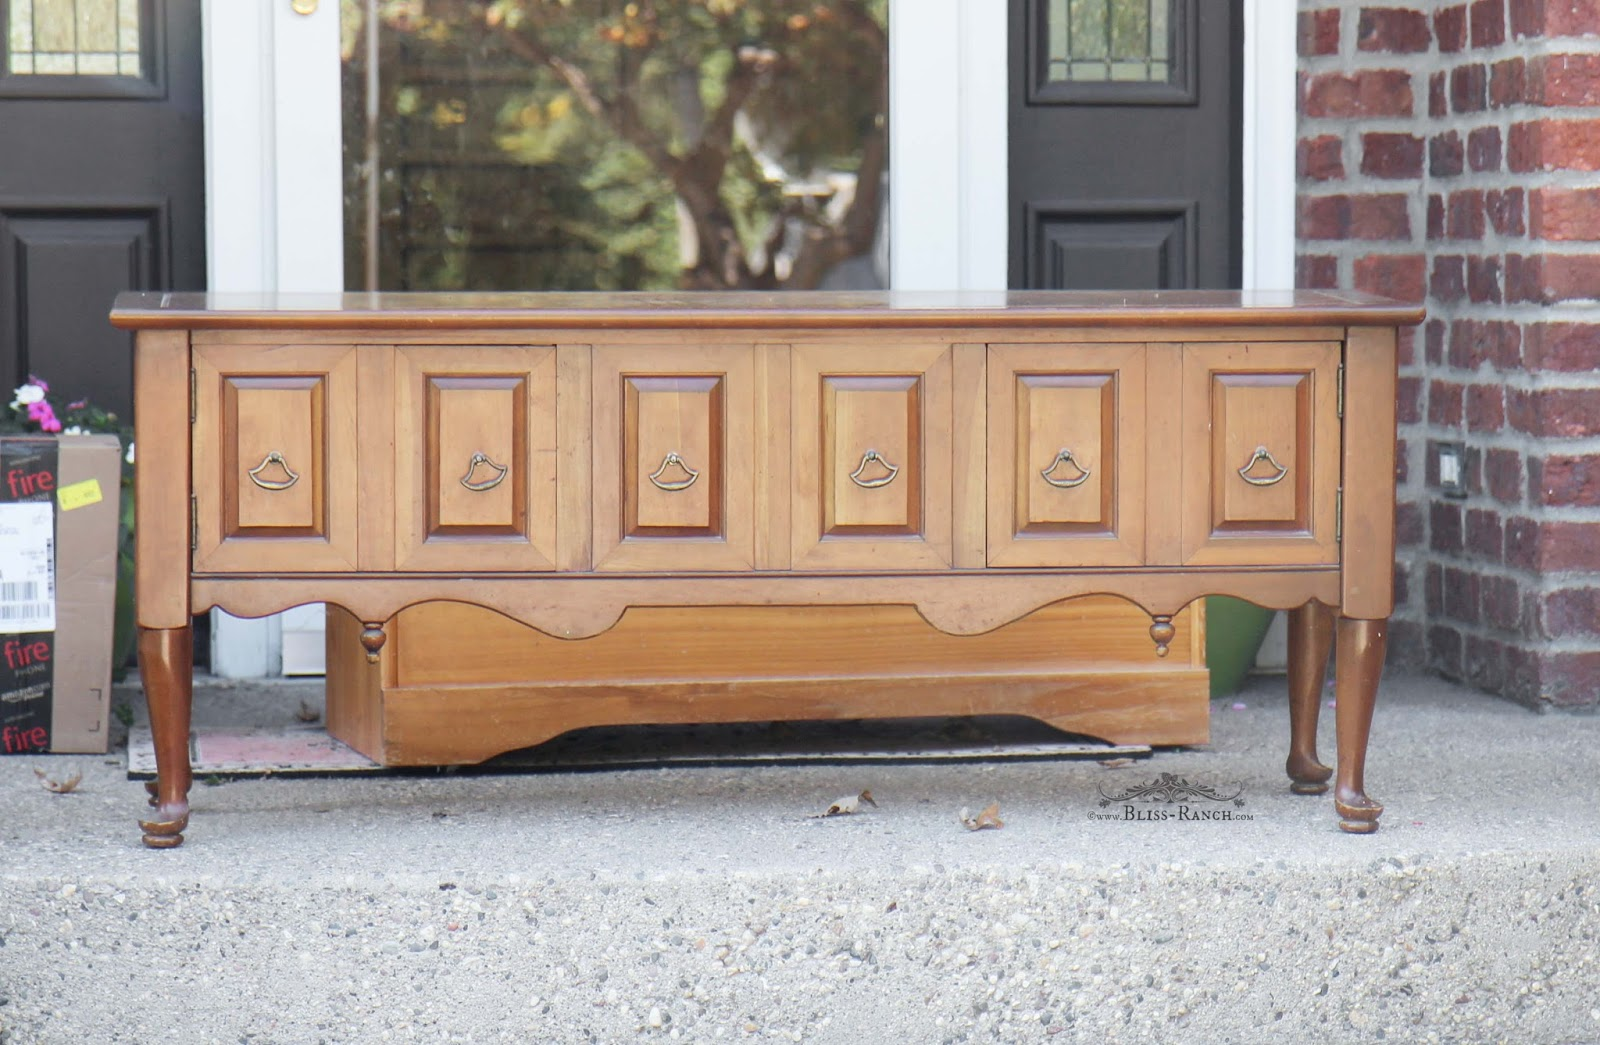 Upcycled Entertainment Center Before Bliss-Ranch.com